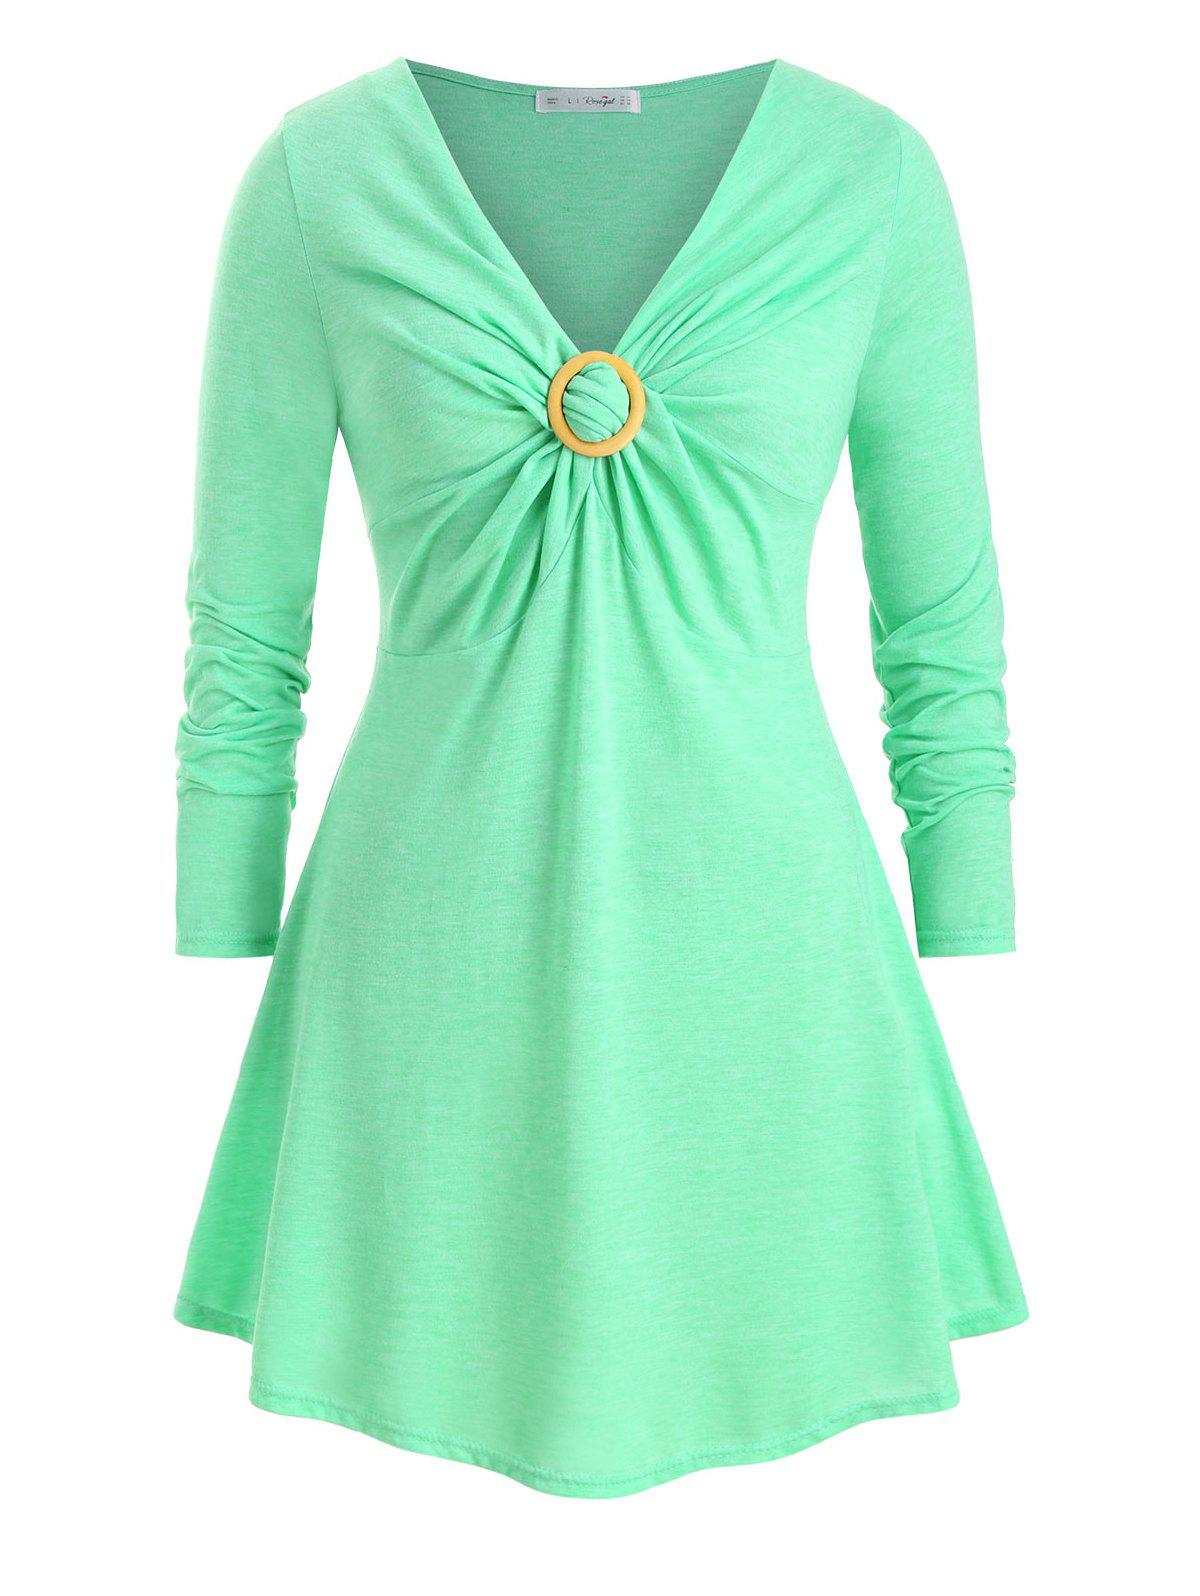 O Ring Twisted Front V Neck Plus Size Longline Top - GREEN 2X